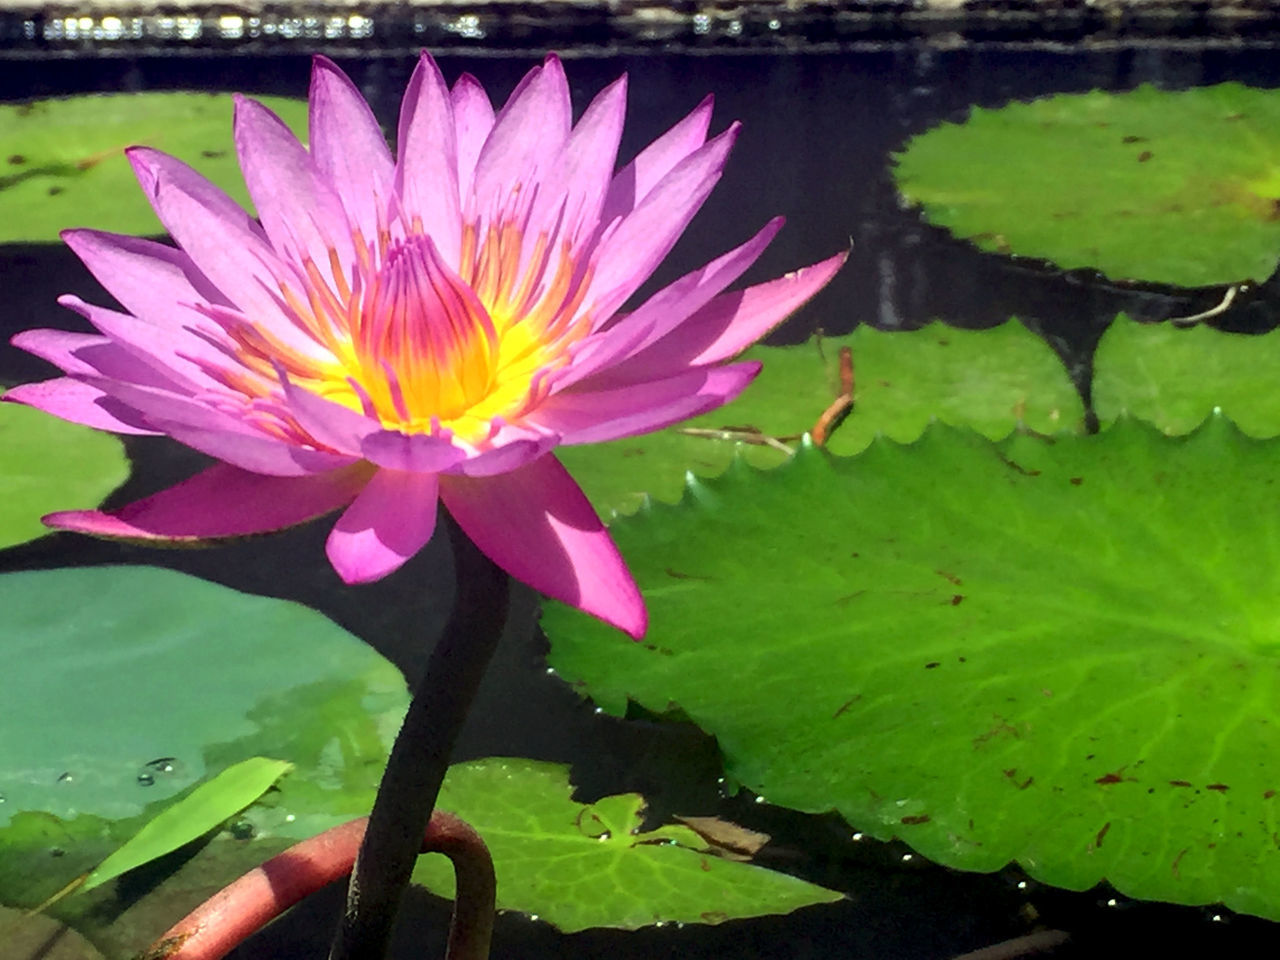 Beauty In Nature Blooming Close-up Day Floating On Water Flower Flower Head Fragility Freshness Growth Lake Leaf Lily Pad Lotus Lotus Water Lily Nature No People Outdoors Petal Plant Water Water Lily Waterfront